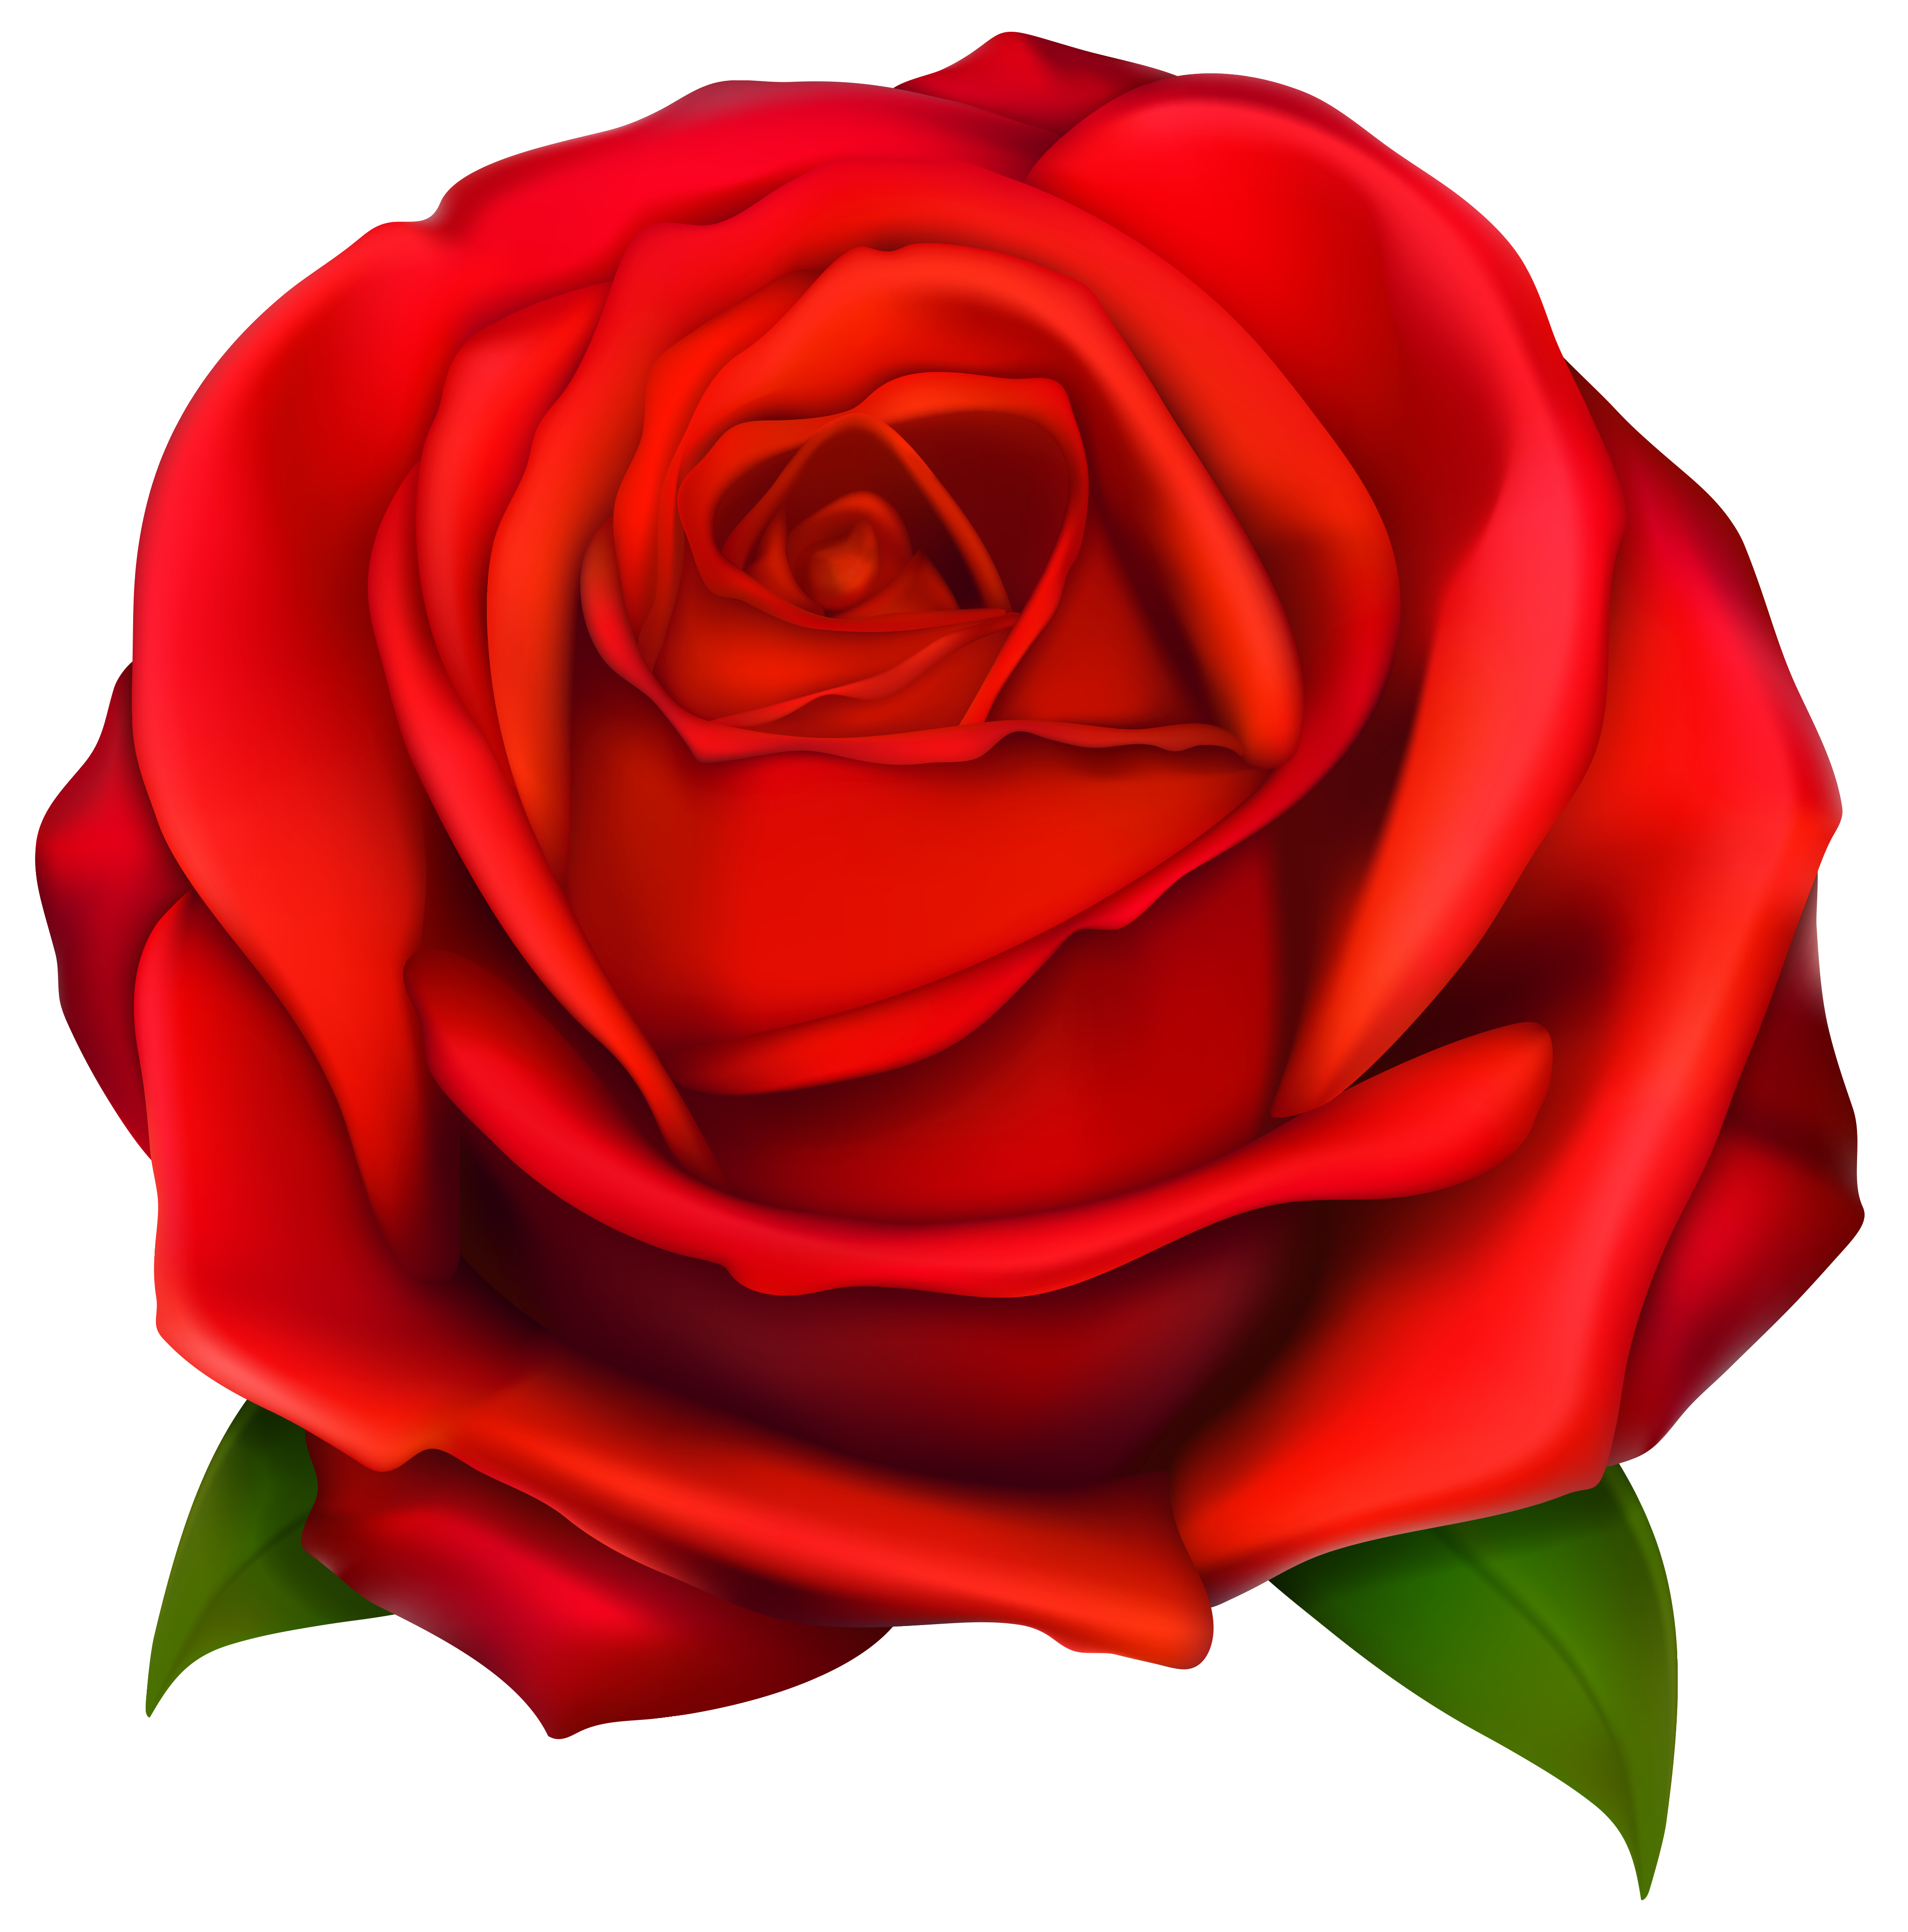 red rose cartoon clipart best clip art roses black and white clip art roses free